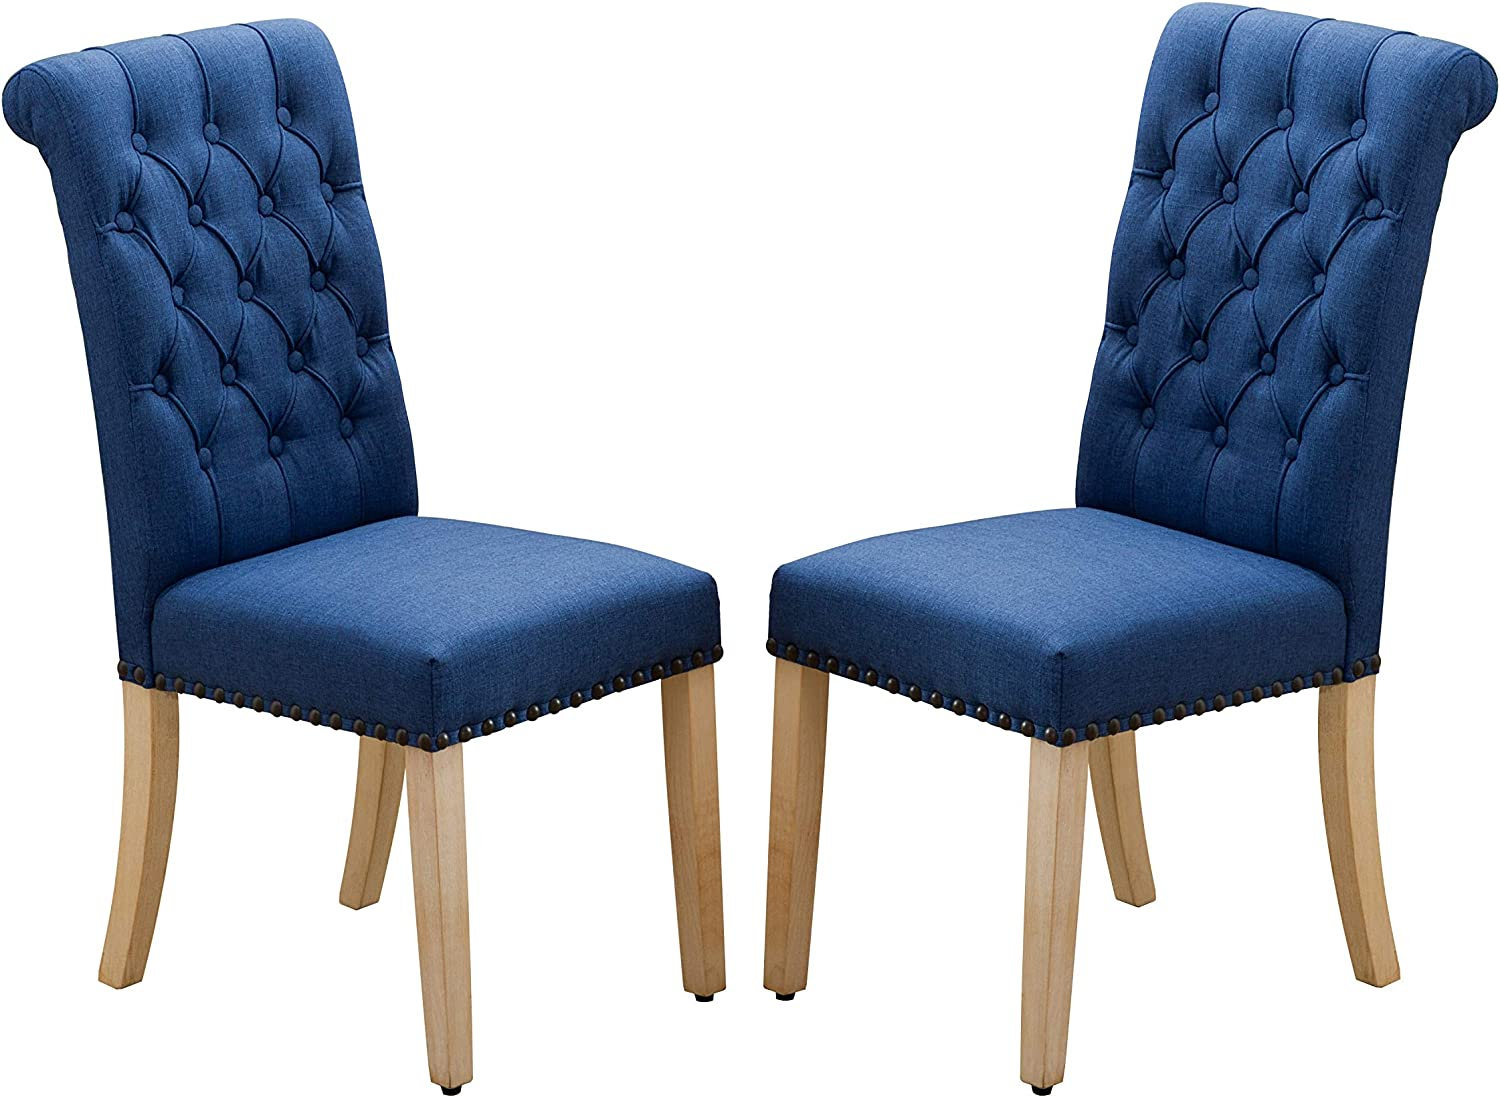 Luxuriour 人気 Fabric Dining Chairs Tufted 新色追加 Back with Chair Coppe High